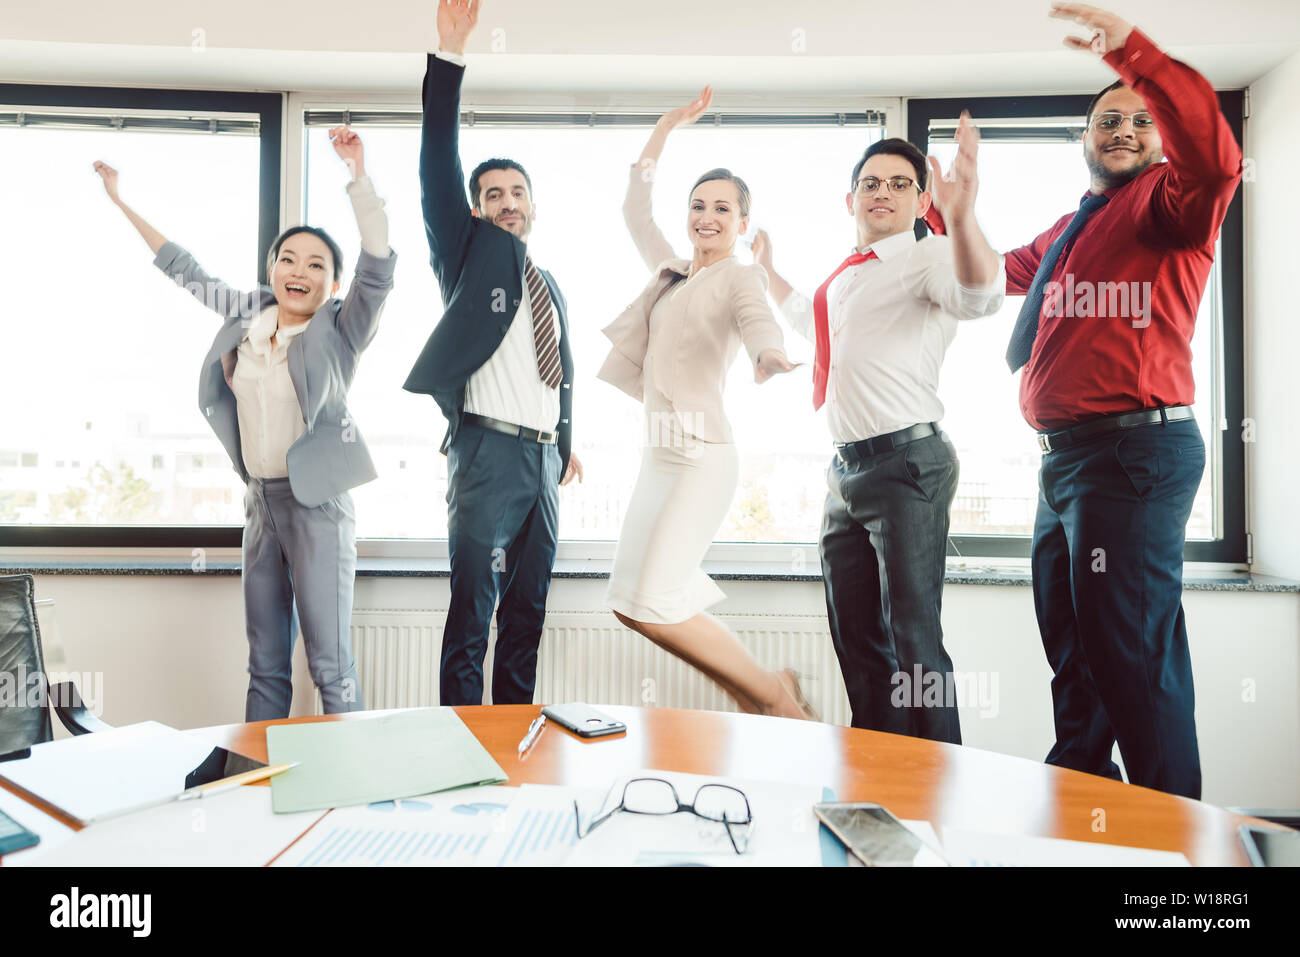 Diversity team of business people jumping high in the office  - Stock Image